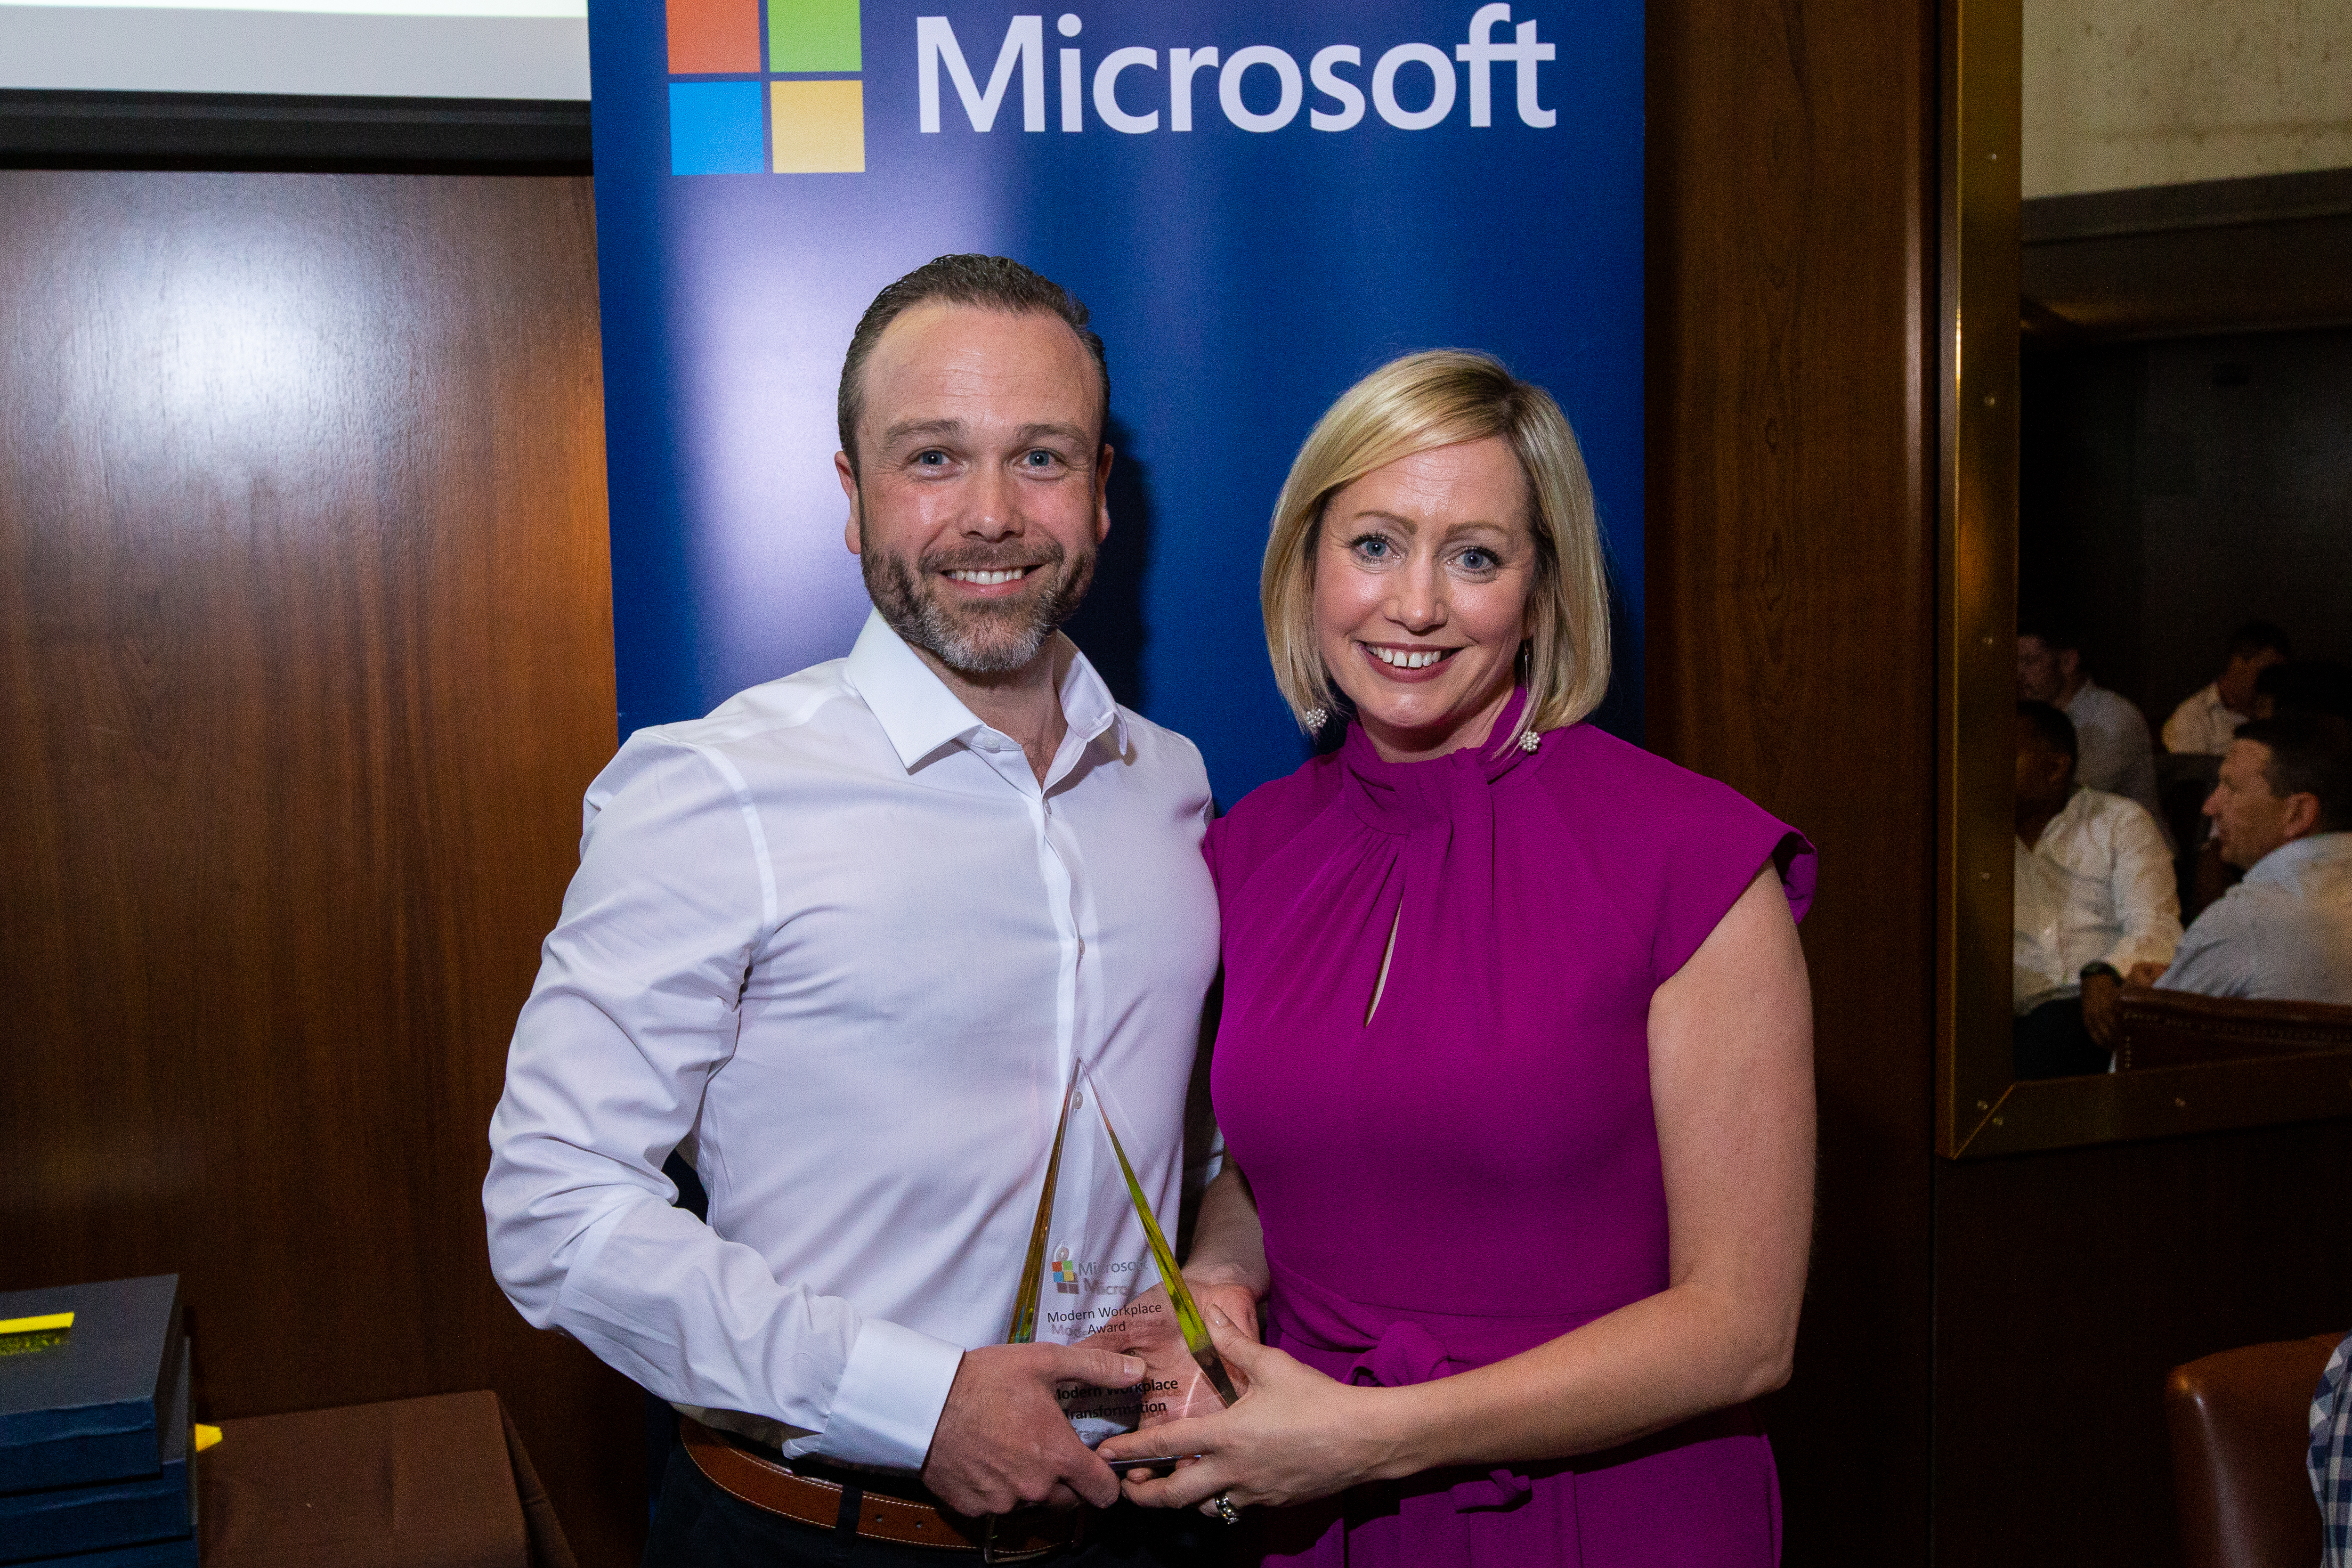 Jimmy Sheahan, Ergo and Aisling Curtis from Microsoft